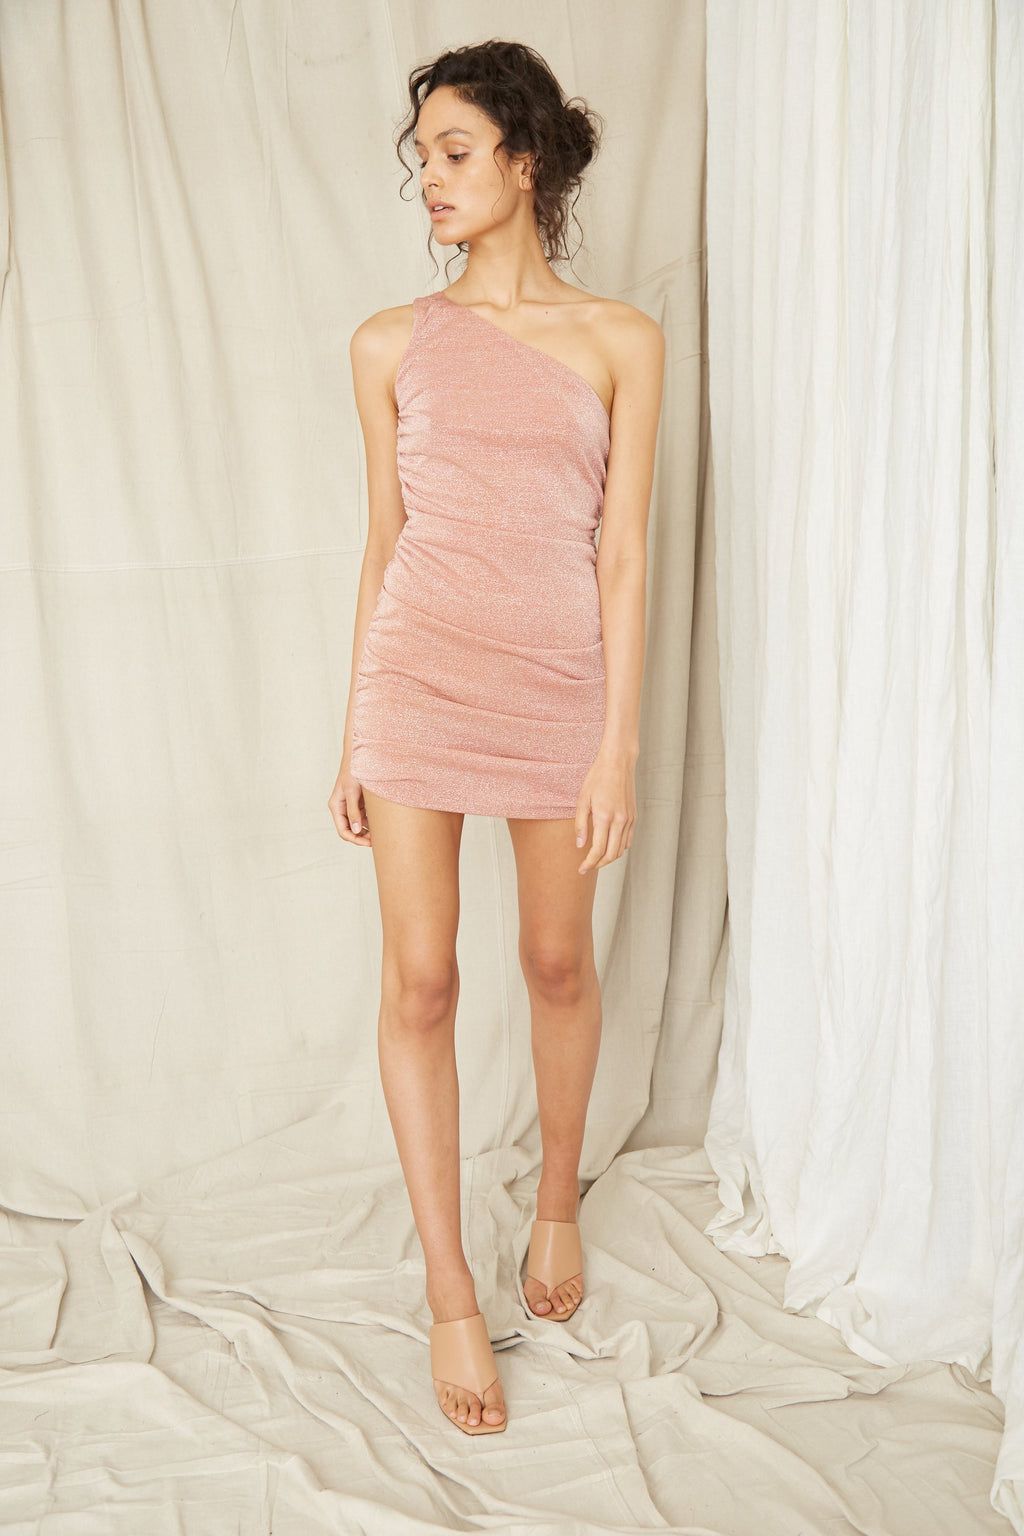 Third Form Star Dust One Shoulder Mini Dress - Blush